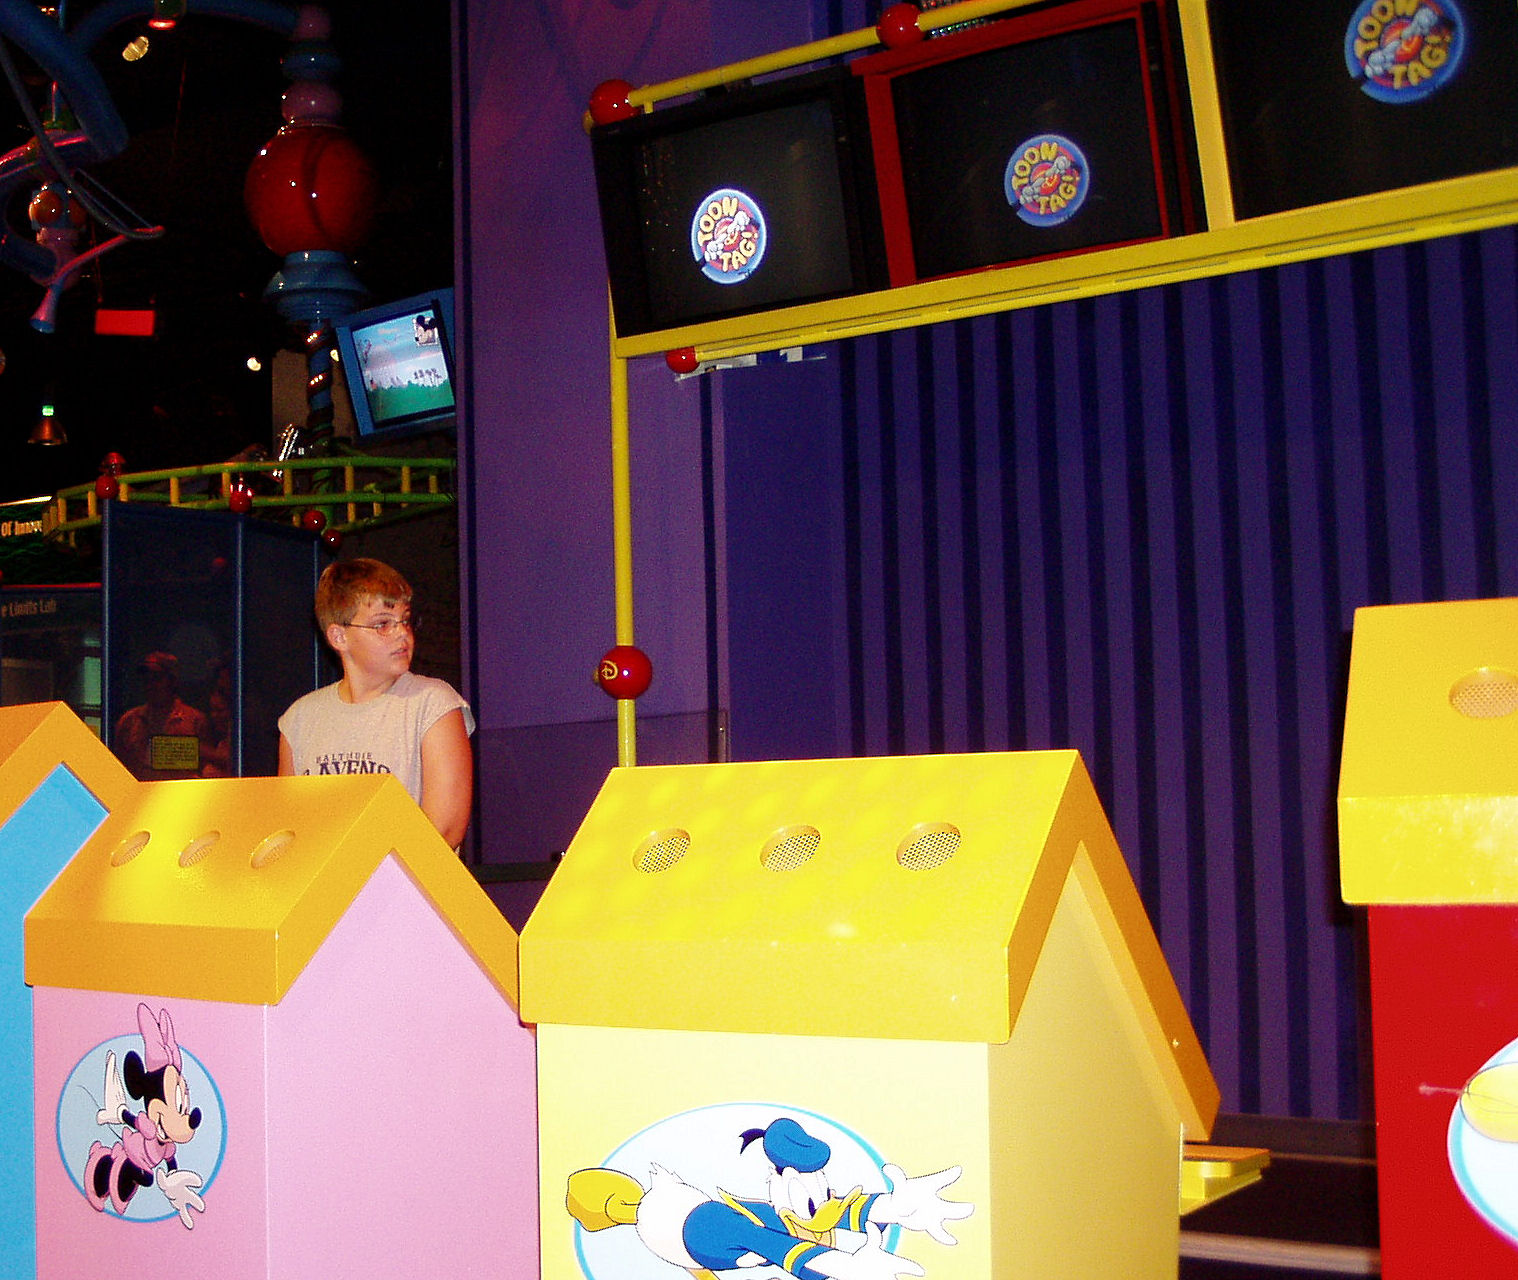 Me about to play Toon Innoventions at EPCOT. (I always liked to play as Goofy)